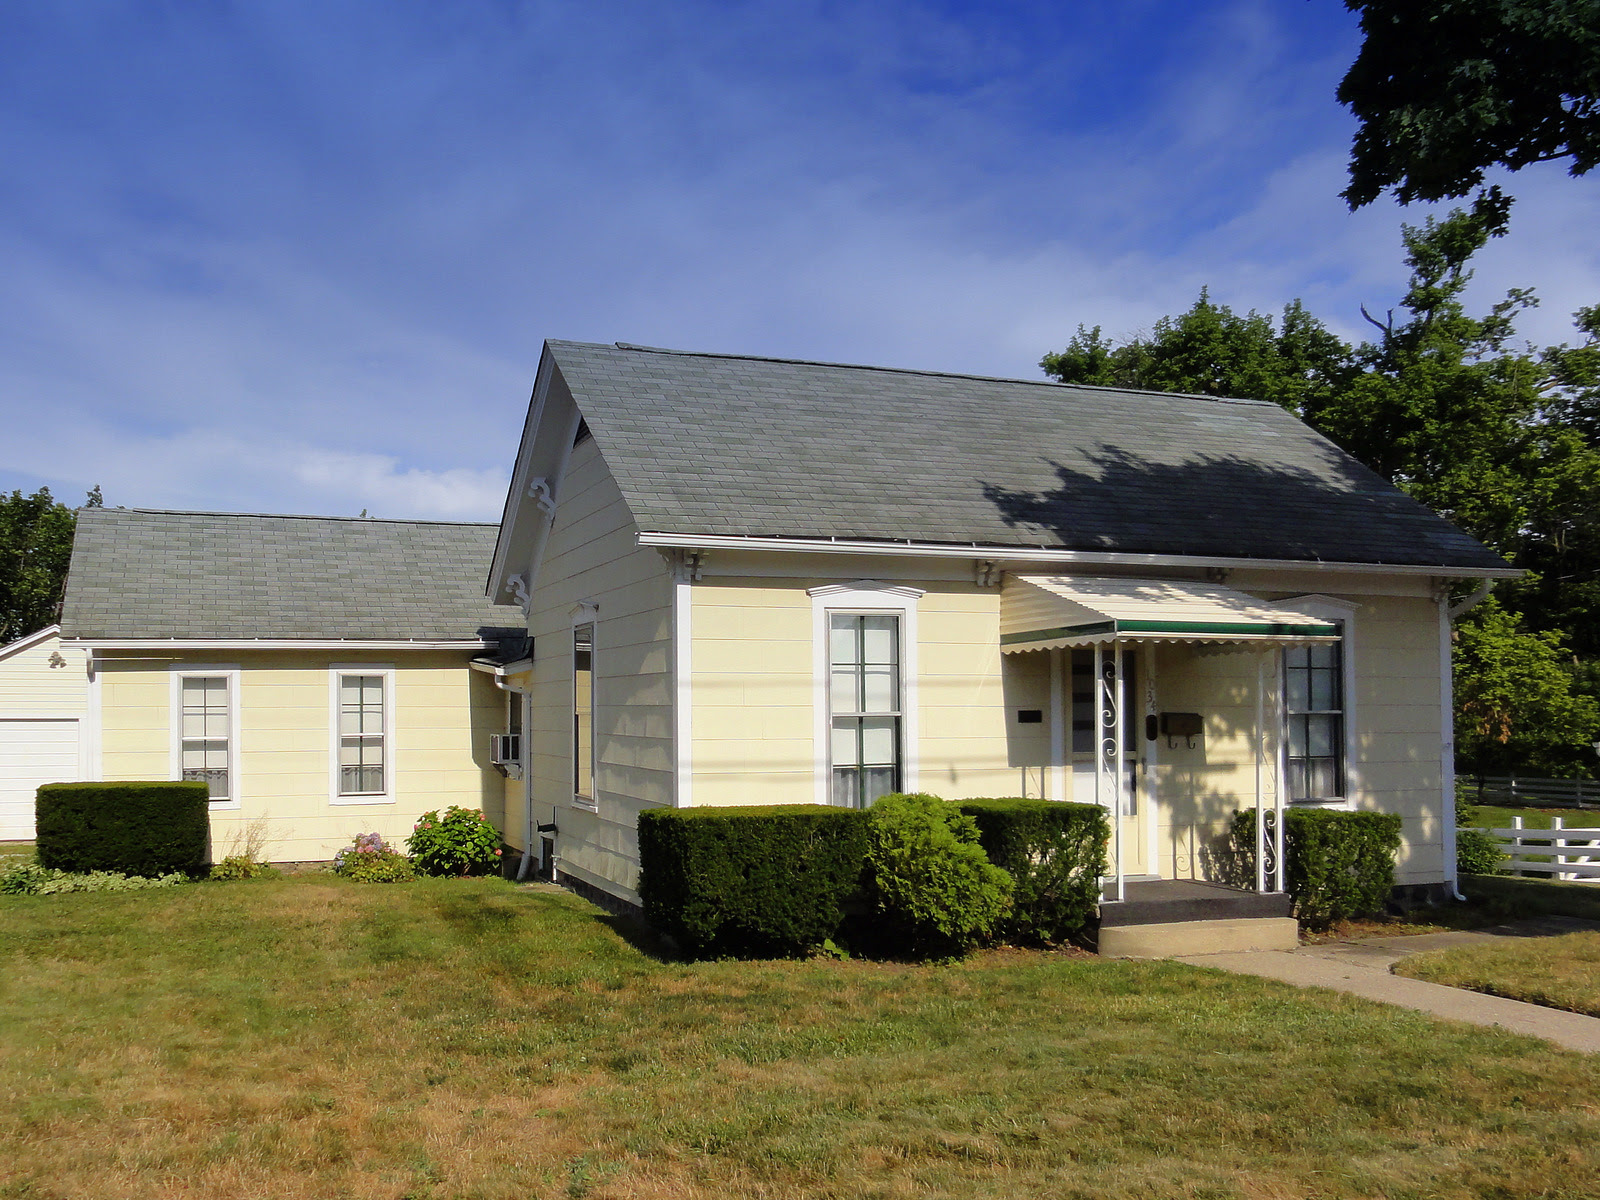 Sold! New Home For Sale in Plymouth MI: 1034 York St in Historic Old Village  BAKE Real Estate